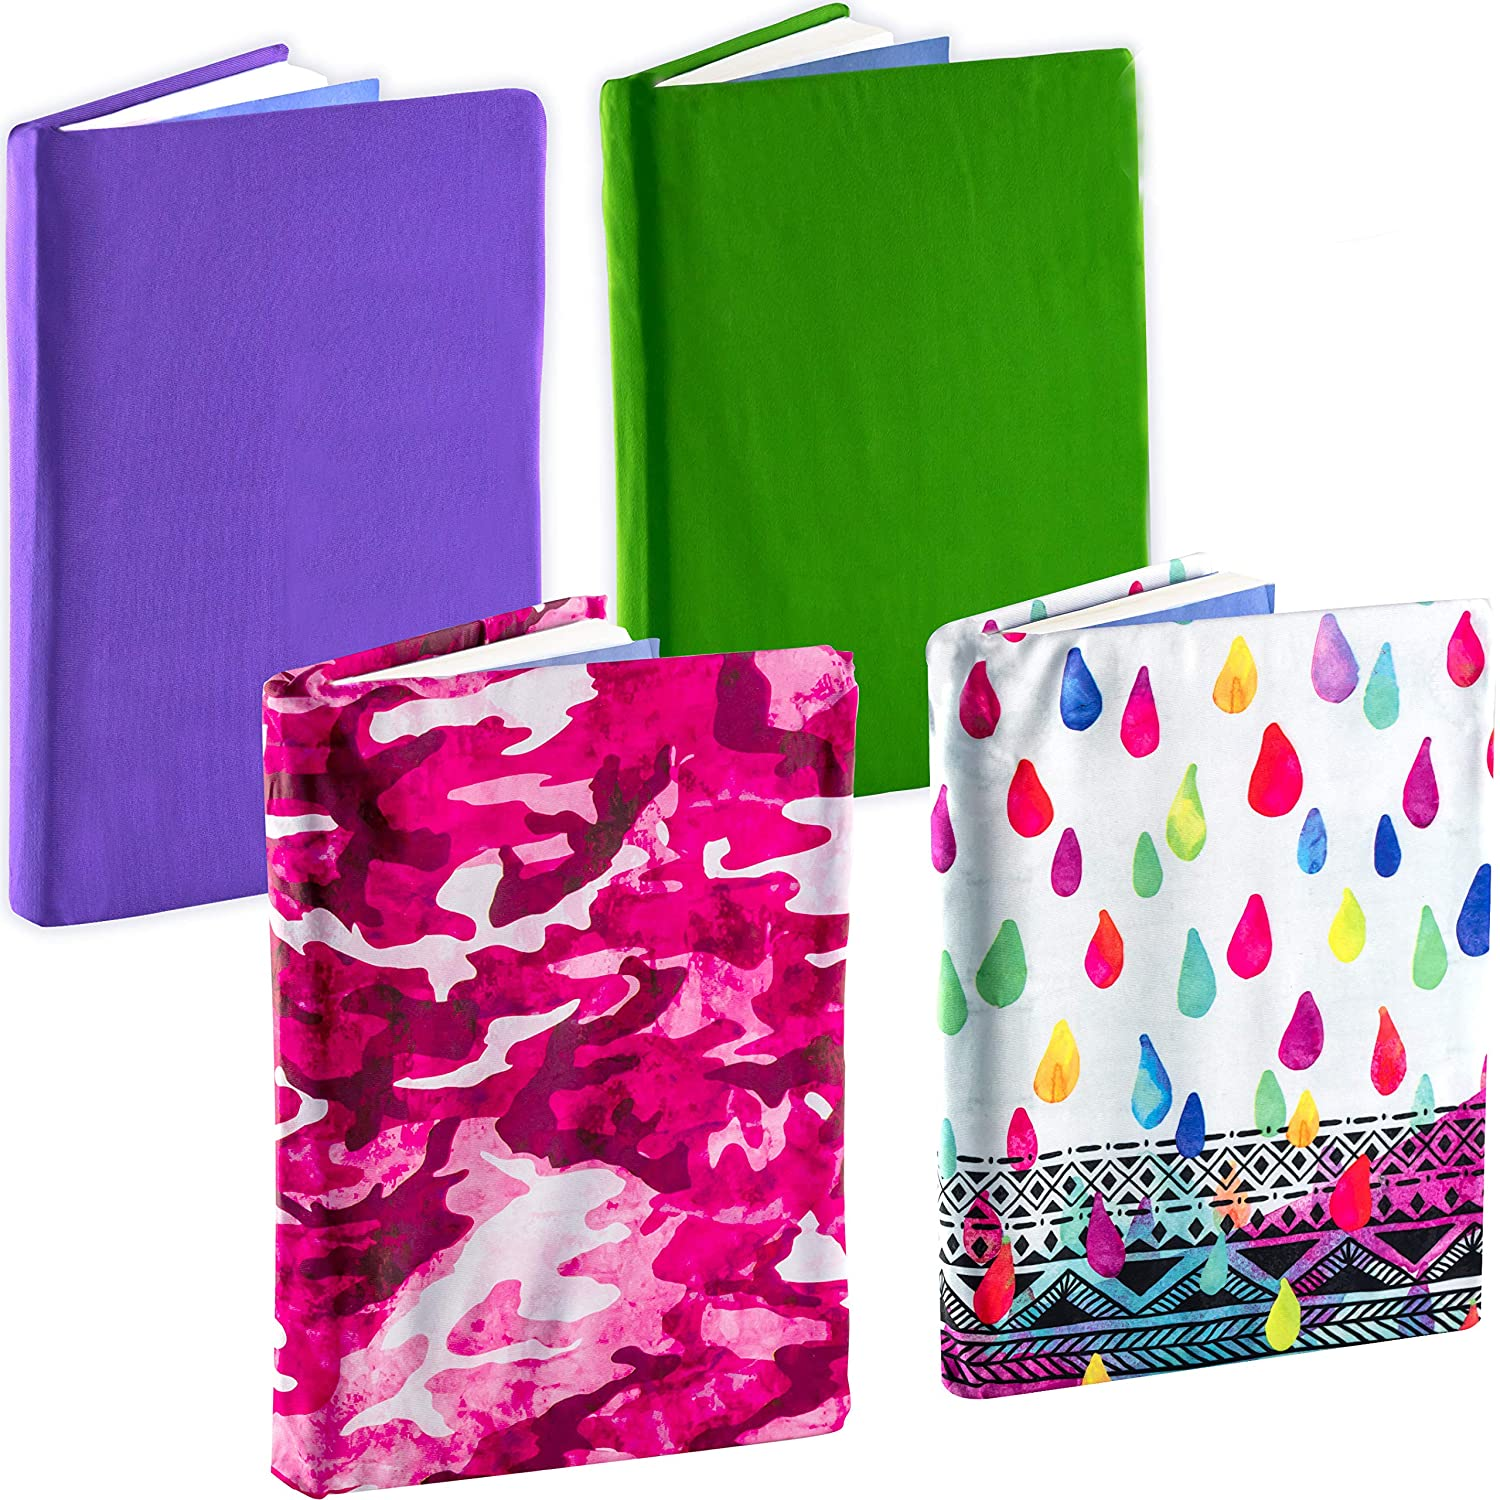 Fits Most Hardcover Textbooks up to 9 x 11 Bright 1 Adhesive-Free Jumbo Nylon Fabric Protectors are A Needed School Supply for Students. Stretchable Book Cover Color 4 Pack